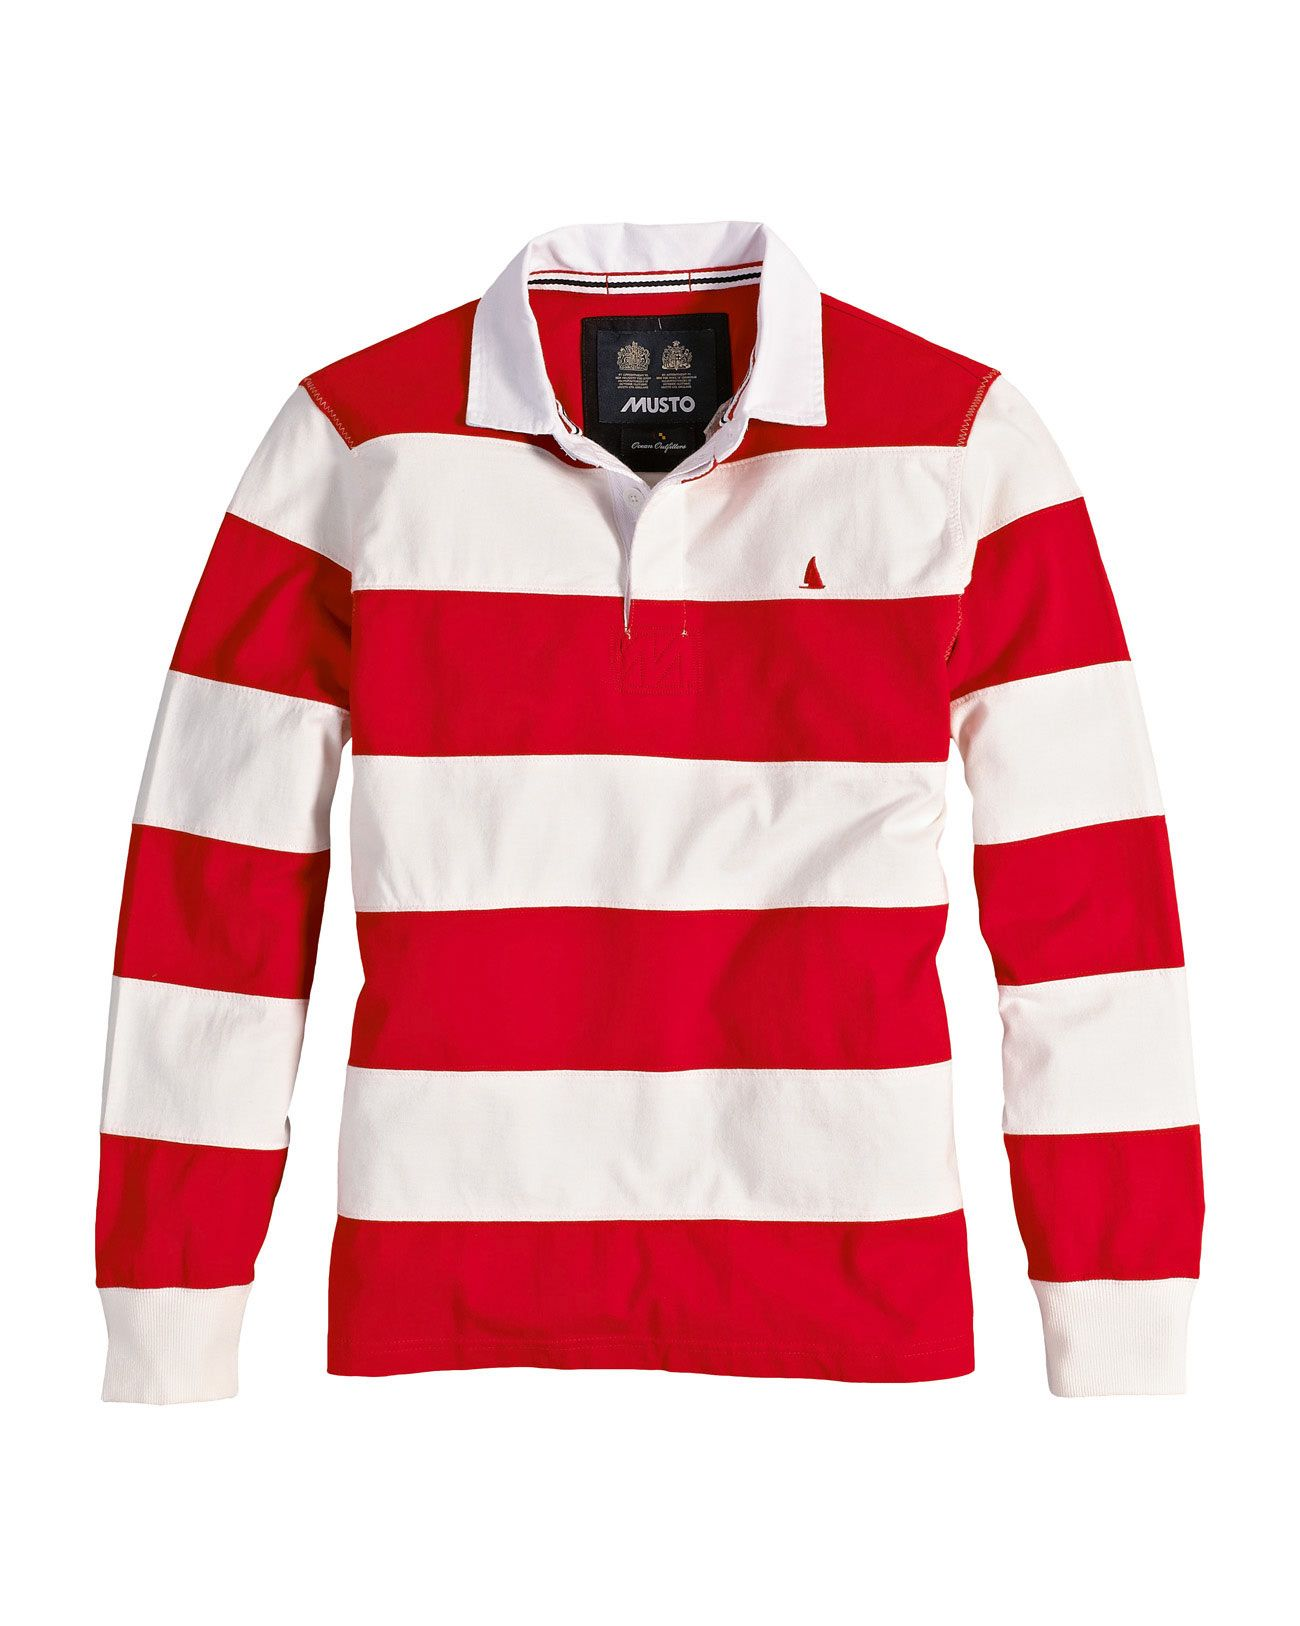 Mens Red And White Striped Rugby Shirt